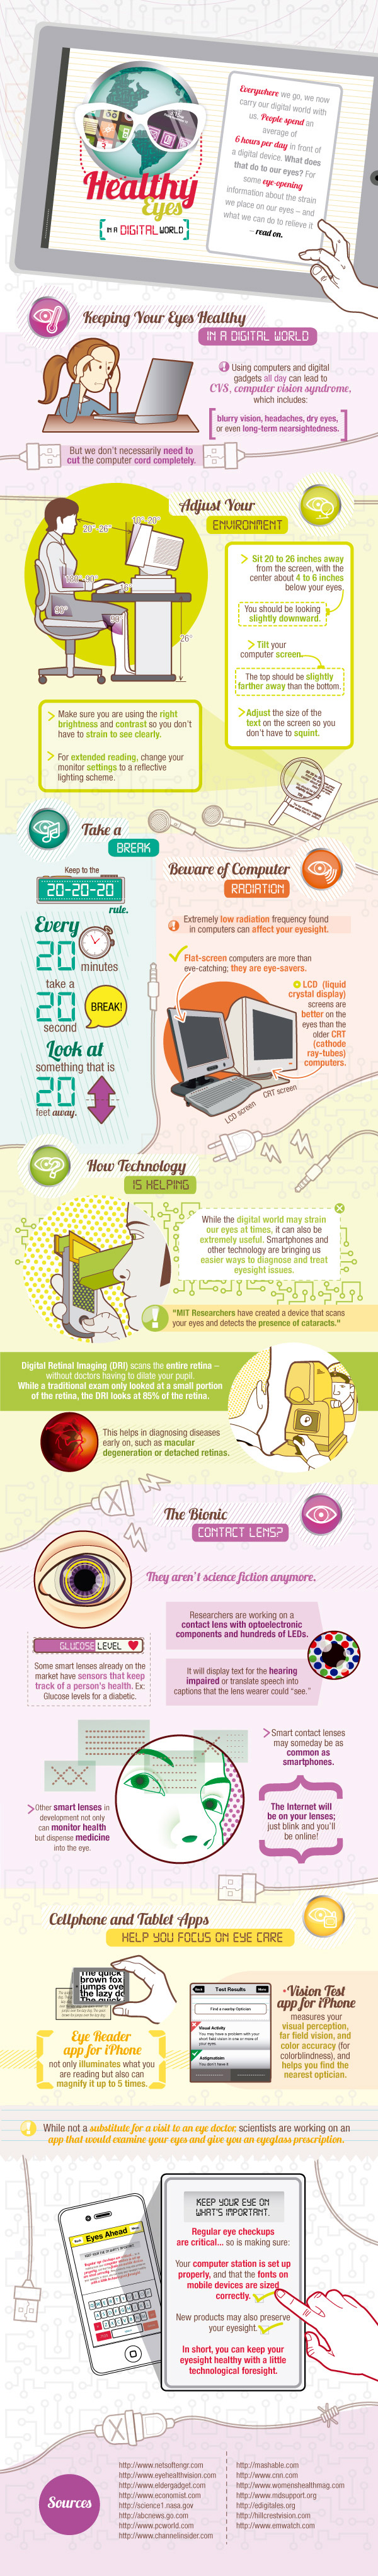 Computer Vision Syndrom Infographic